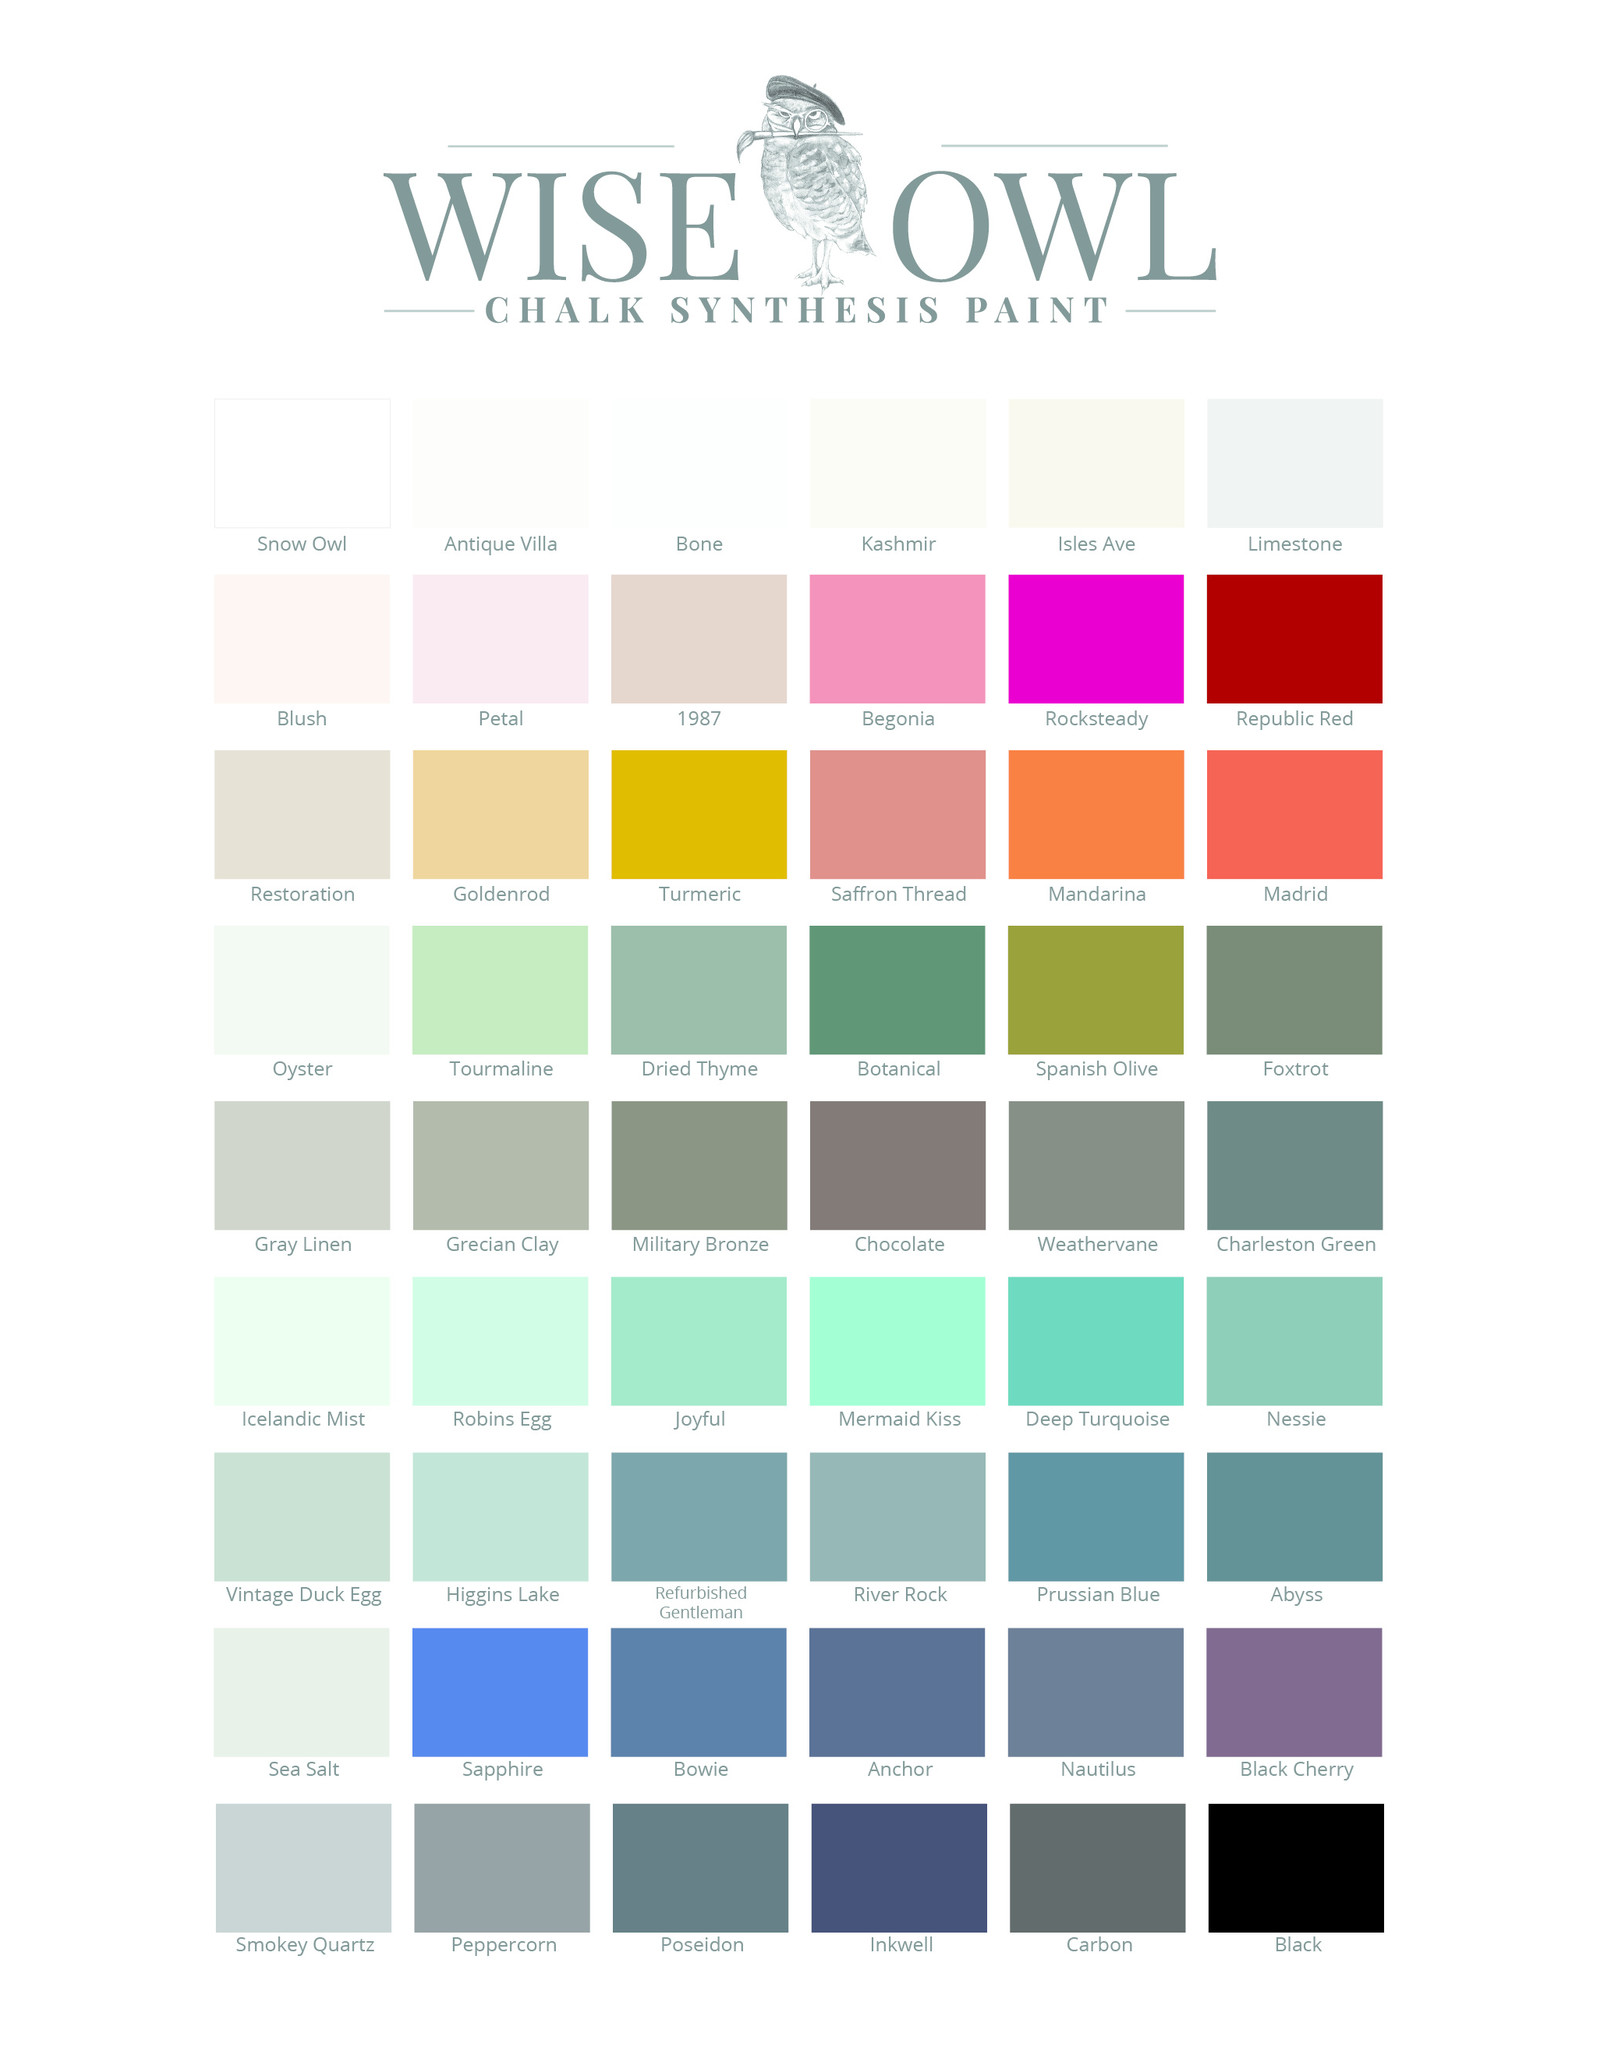 Wise Owl Paint Chalk Synthesis Paint Vintage Duck Egg-Pint